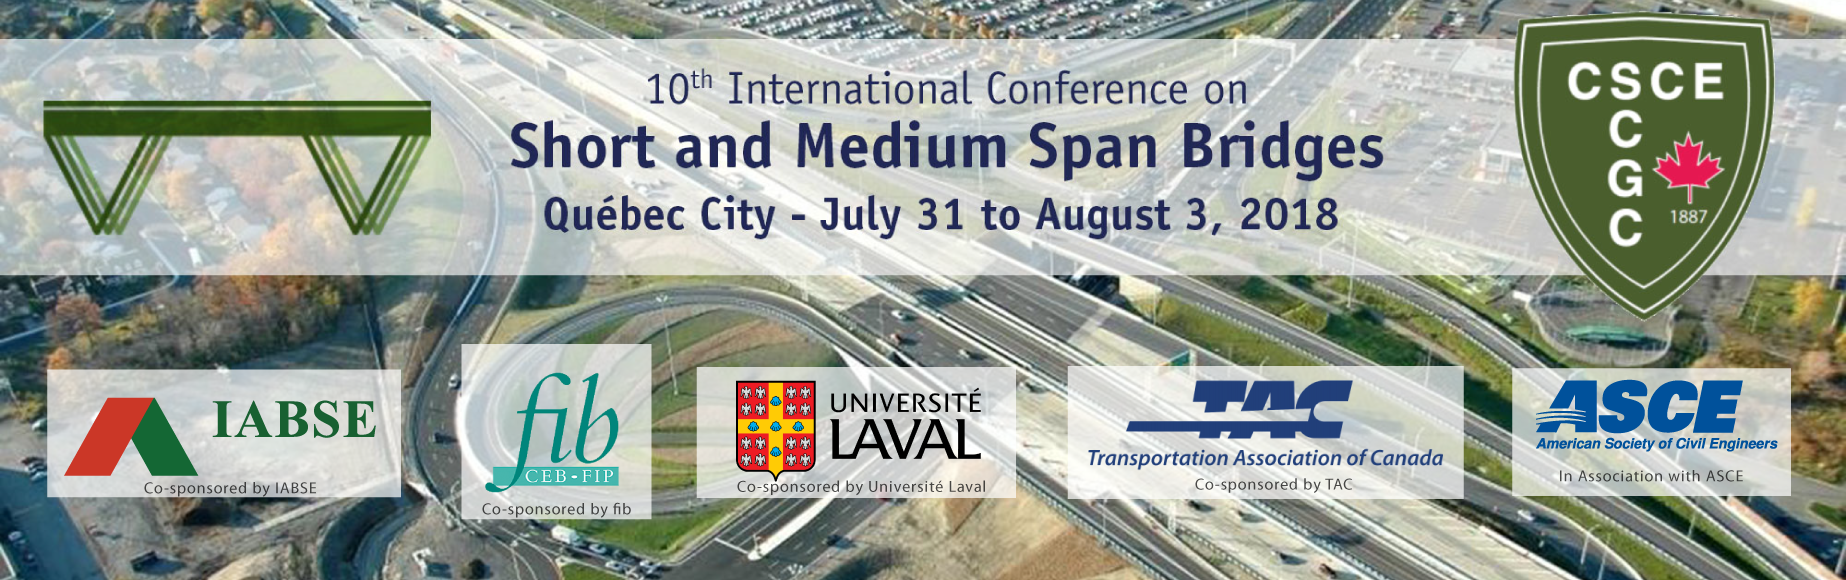 10th International Conference on Short and Medium Spam Bridges